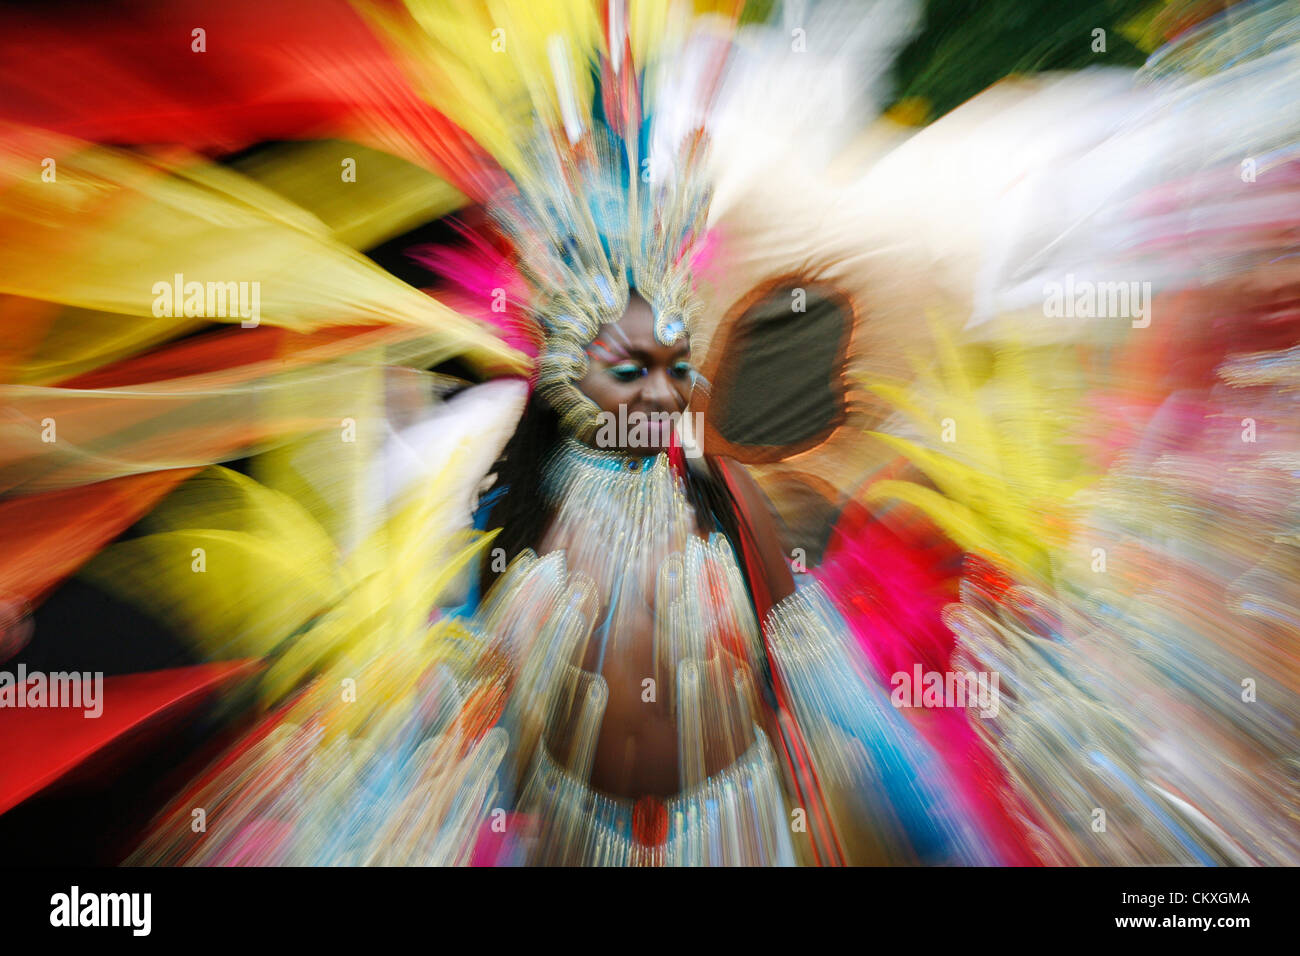 London, UK - August 27, 2012: Performers take part in the second day of Notting Hill Carnival, largest in Europe. Stock Photo